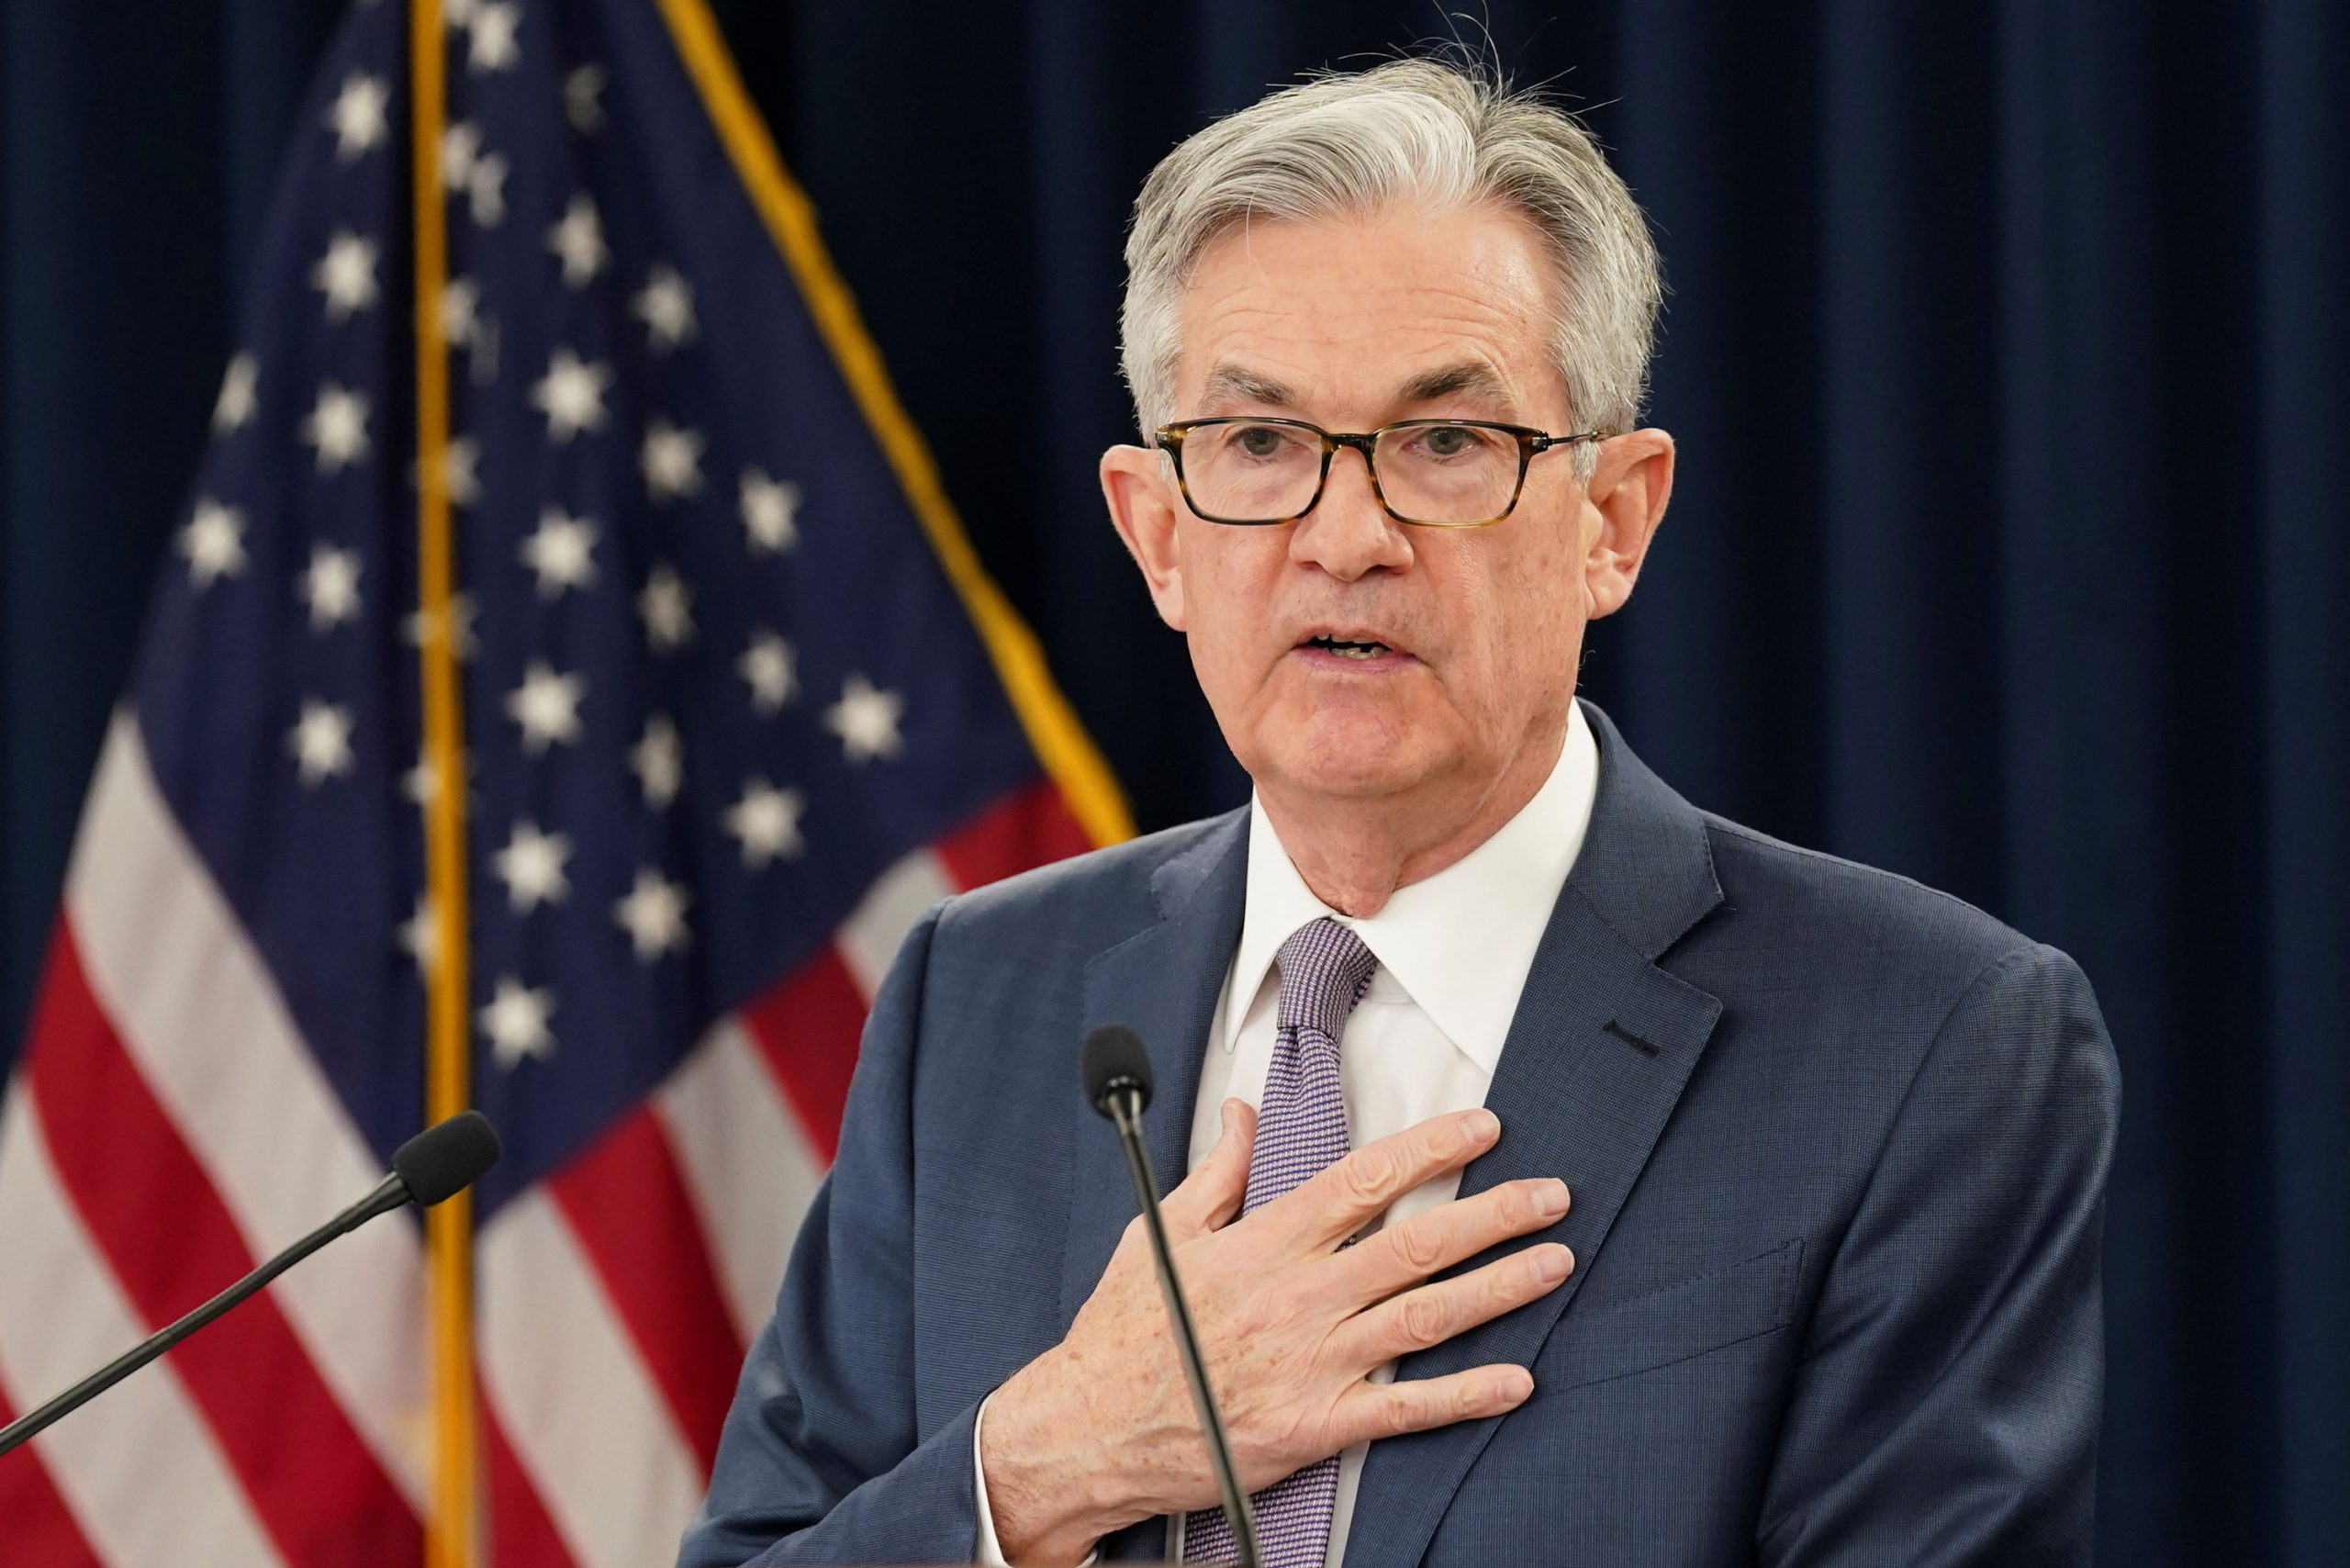 The Federal Reserve just pledged asset purchases with no limit to support markets